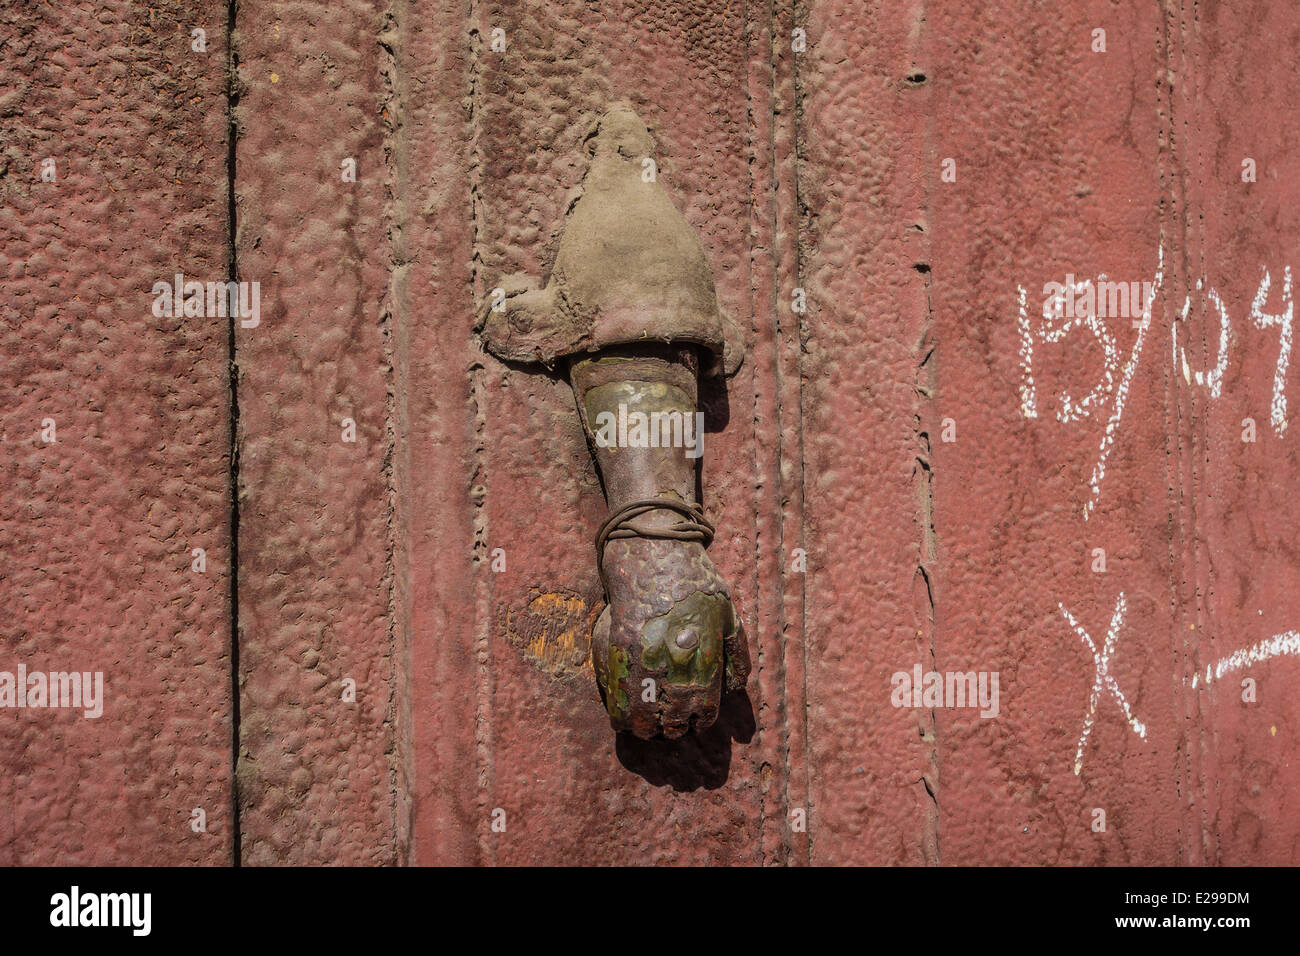 Antique metal door knocker that is well worn on a weathered door in the central part of Sucre, Bolivia - Stock Image